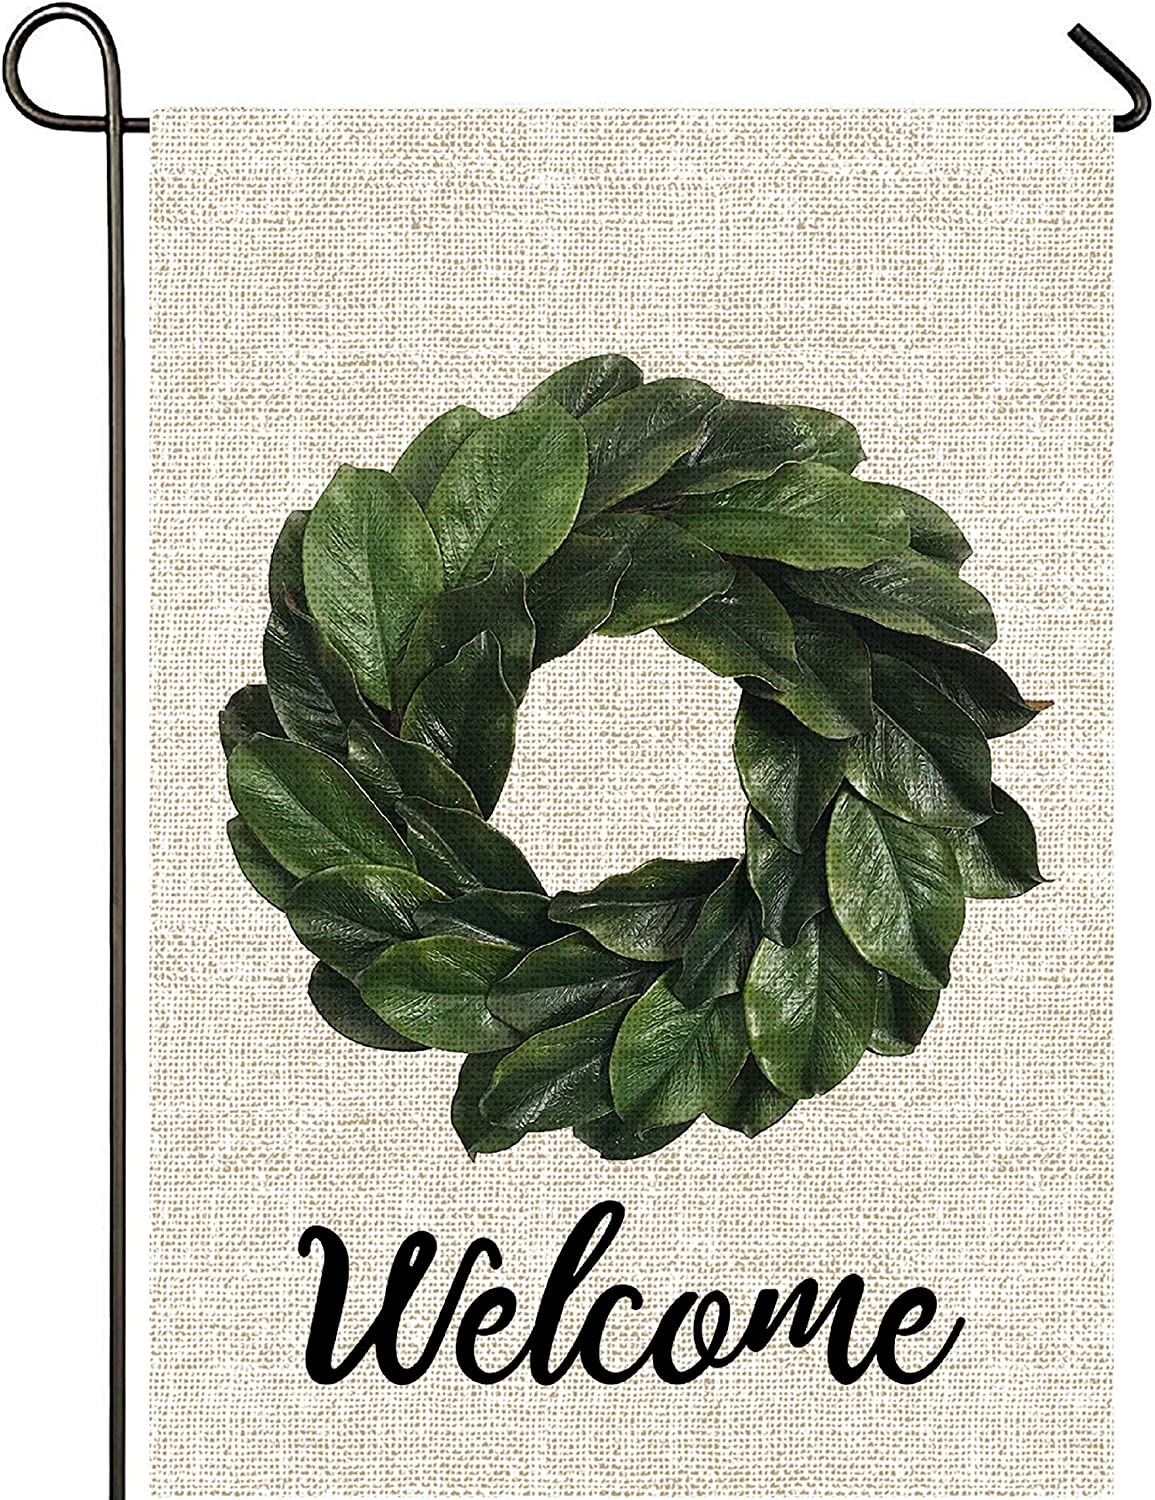 Mogarden Welcome Magnolia Leaves Wreath Garden Flag, Double Sided, 12.5 x 18 Inches, Thick Weatherproof Burlap Summer Yard Flag